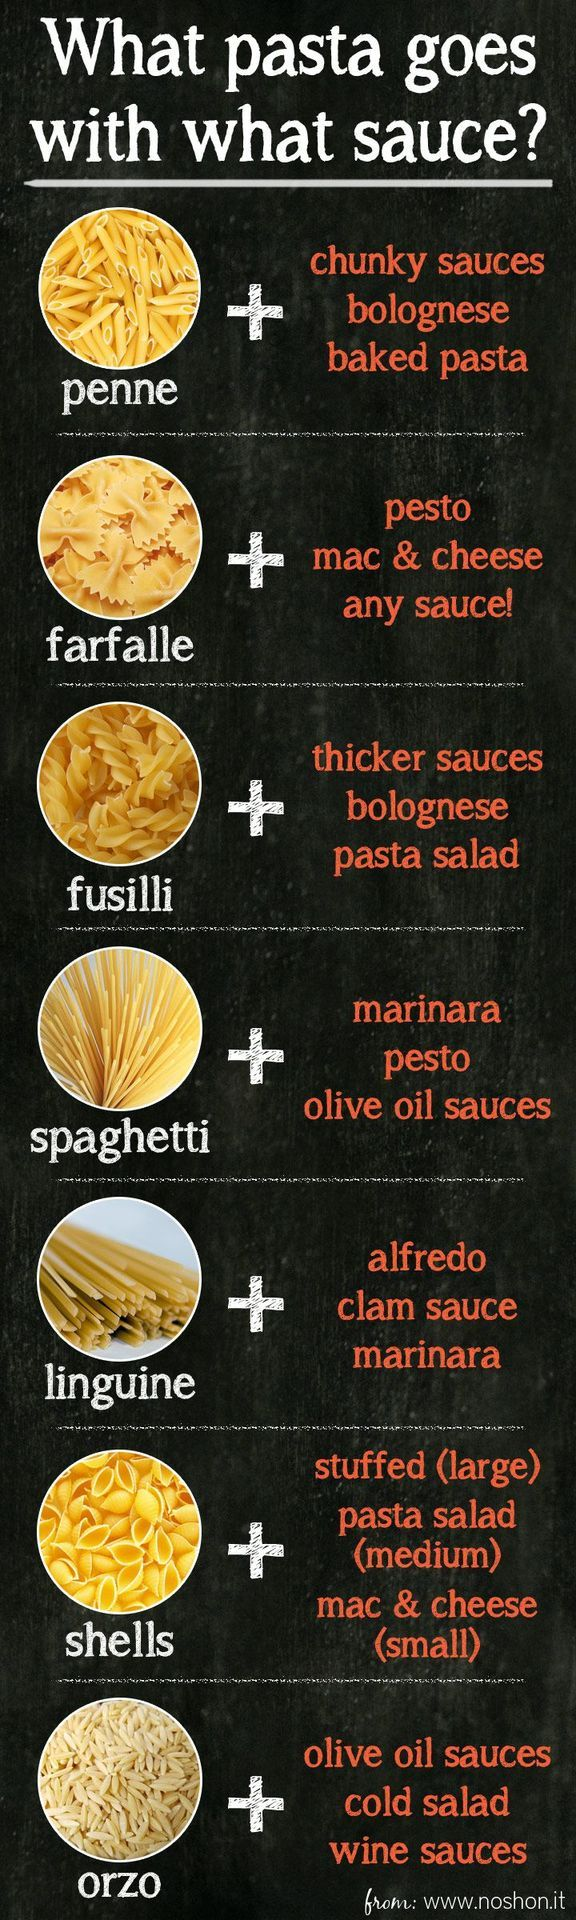 What pasta goes with what sauce?